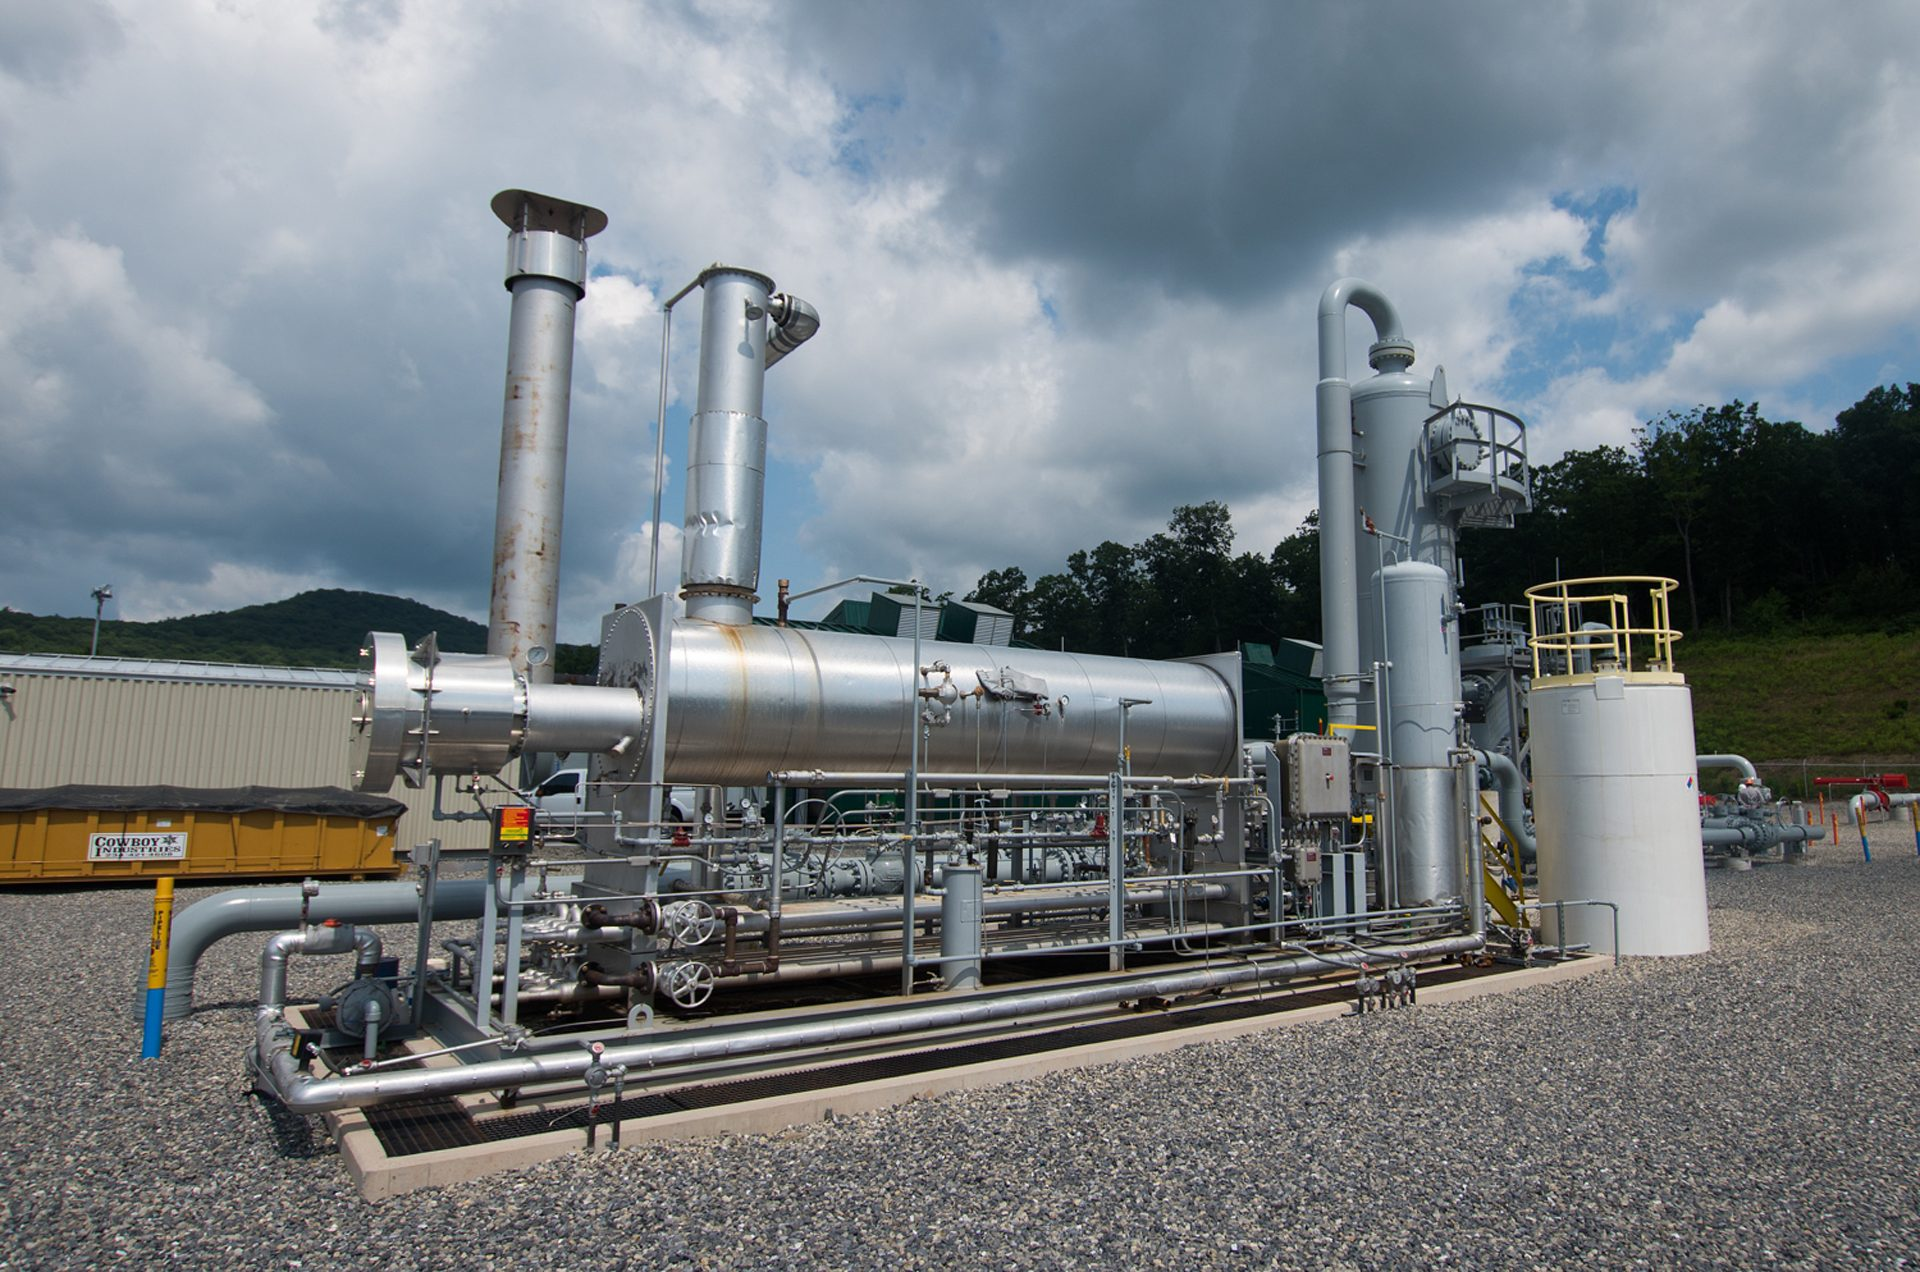 Methane leaks throughout the entire process of developing natural gas-- from wells and storage sites, to processing facilities and pipelines.